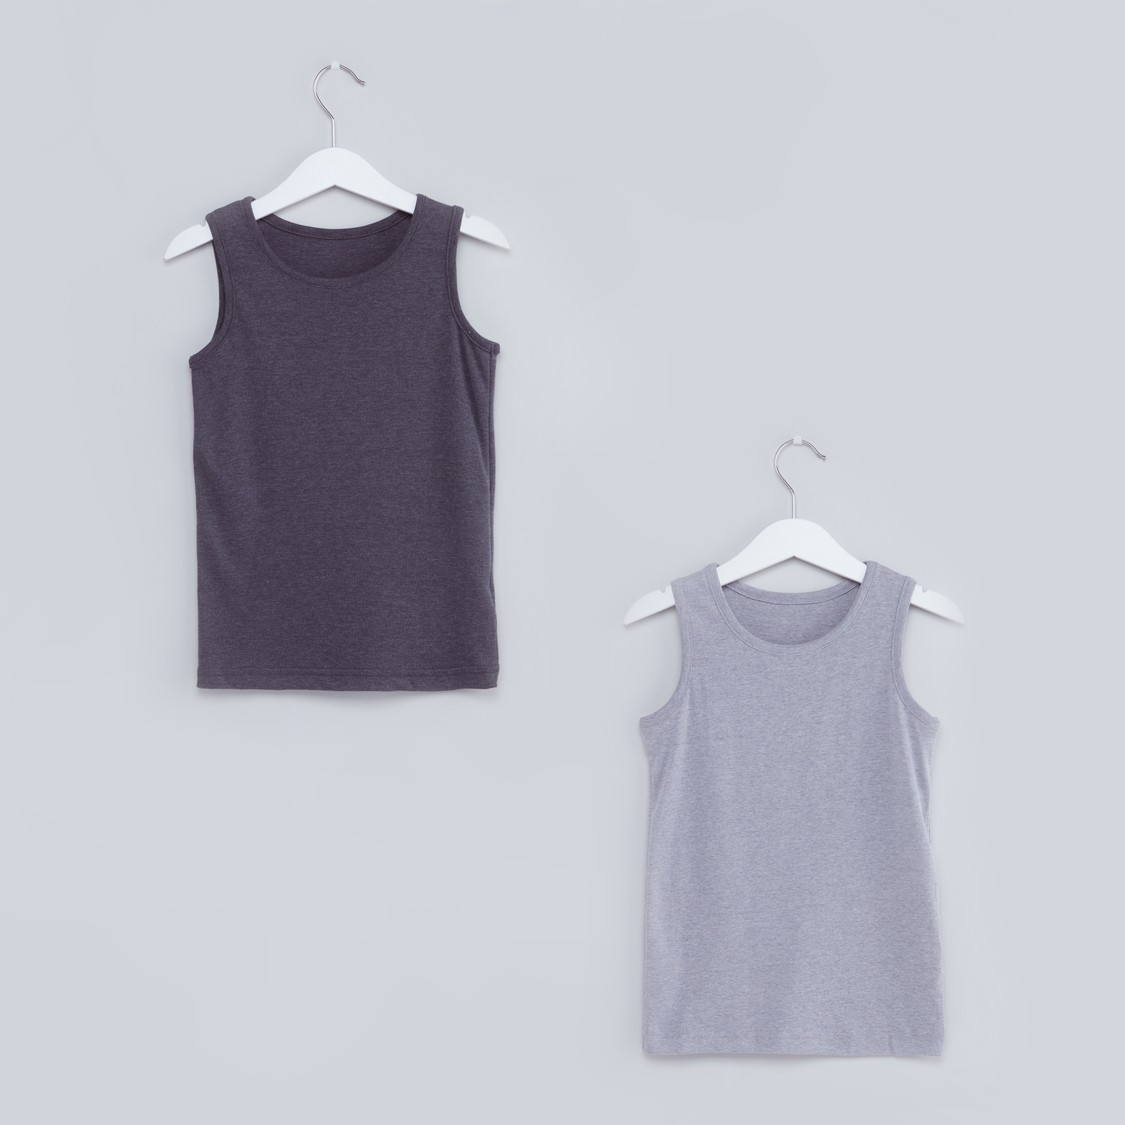 Ribbed Sleeveless Vest - Set of 2